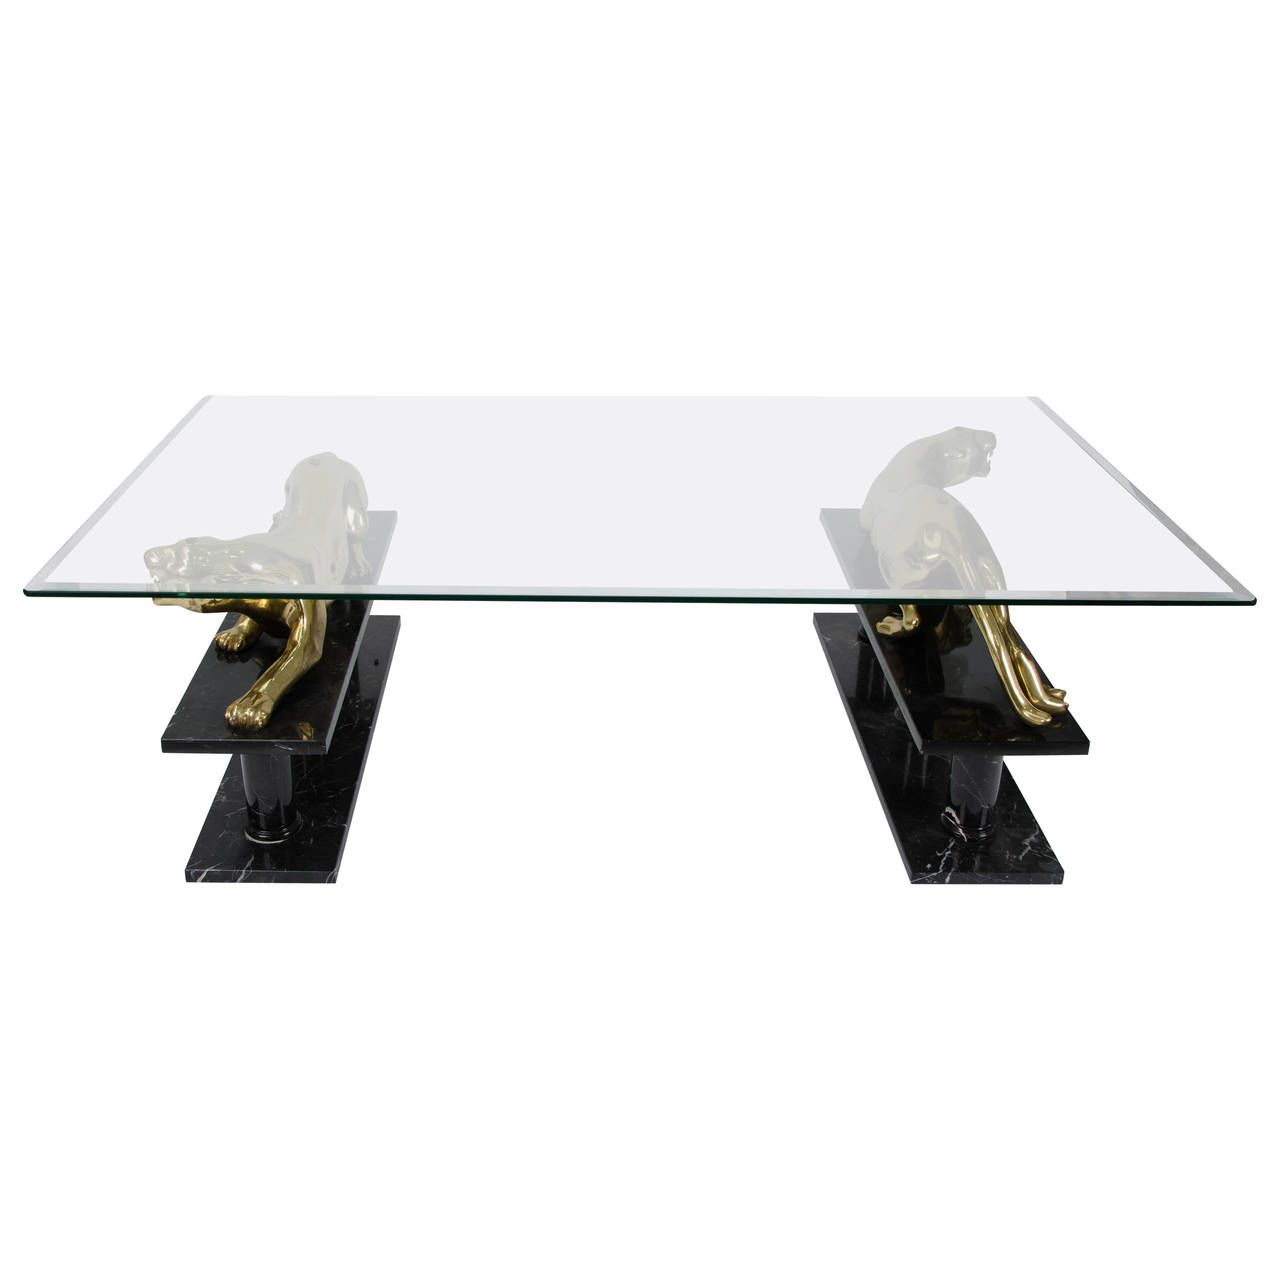 panther coffee table   panther   peacock   pinterest   panthers